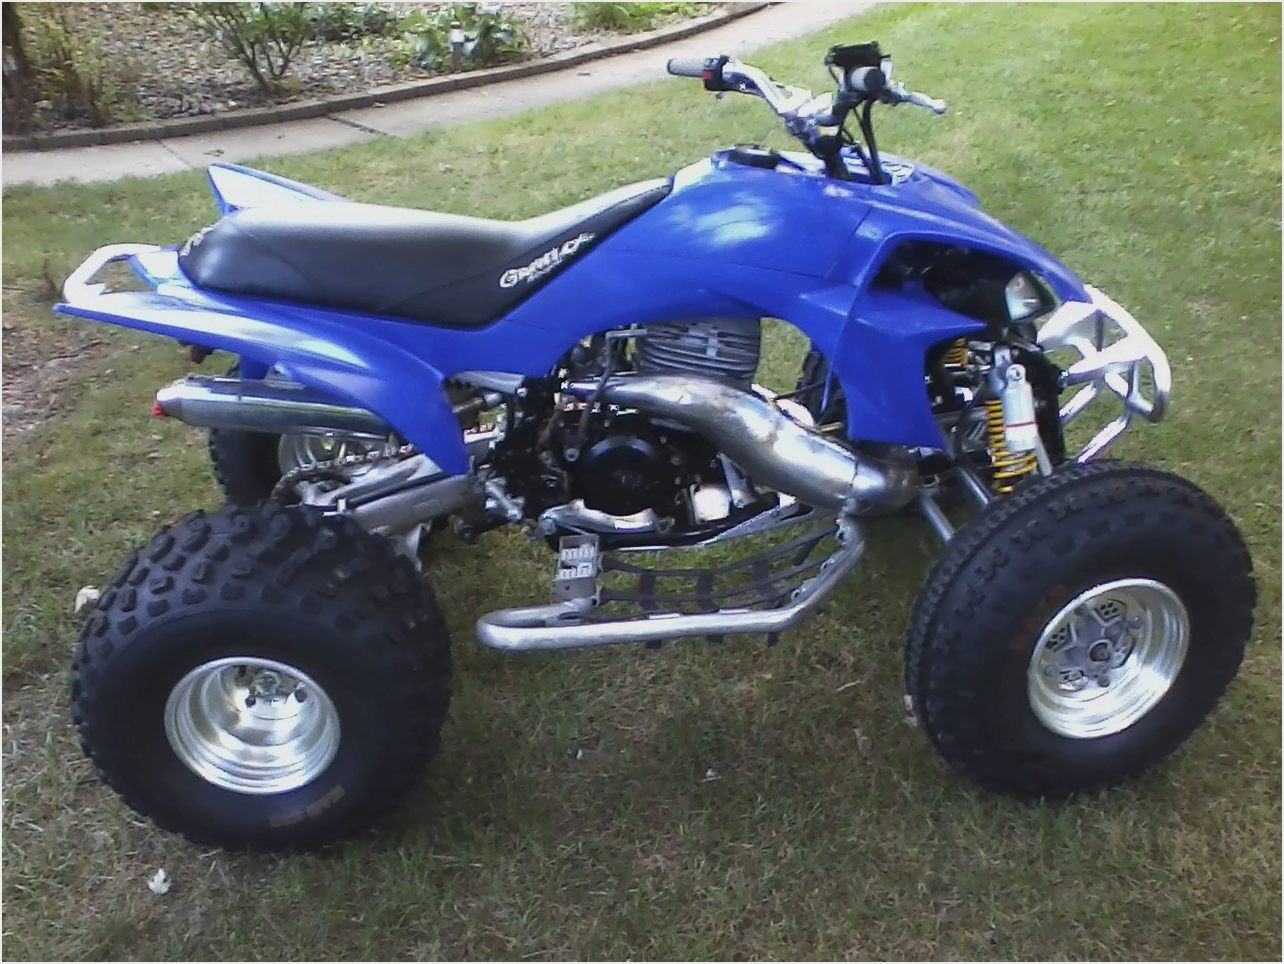 Polaris Scrambler 400 images #120848